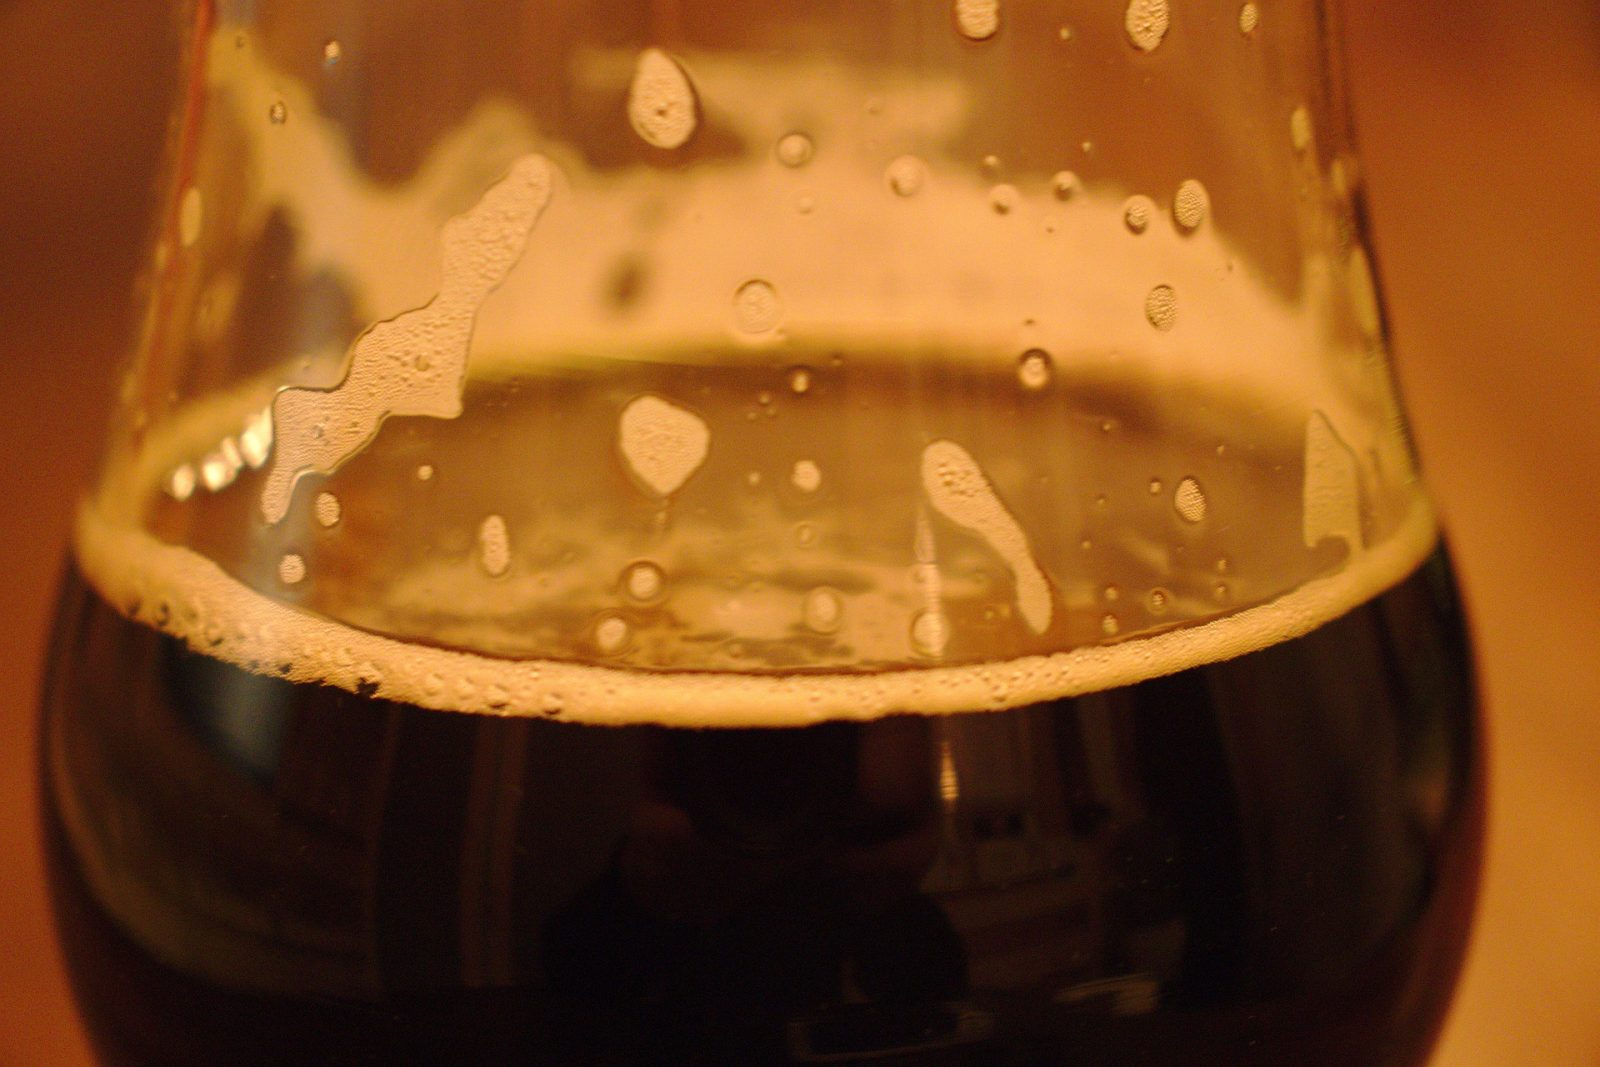 How to talk about Beer like a Pro when back in the Pub!, beer 4982458 1920 1600x1067%, daily-dad, community%